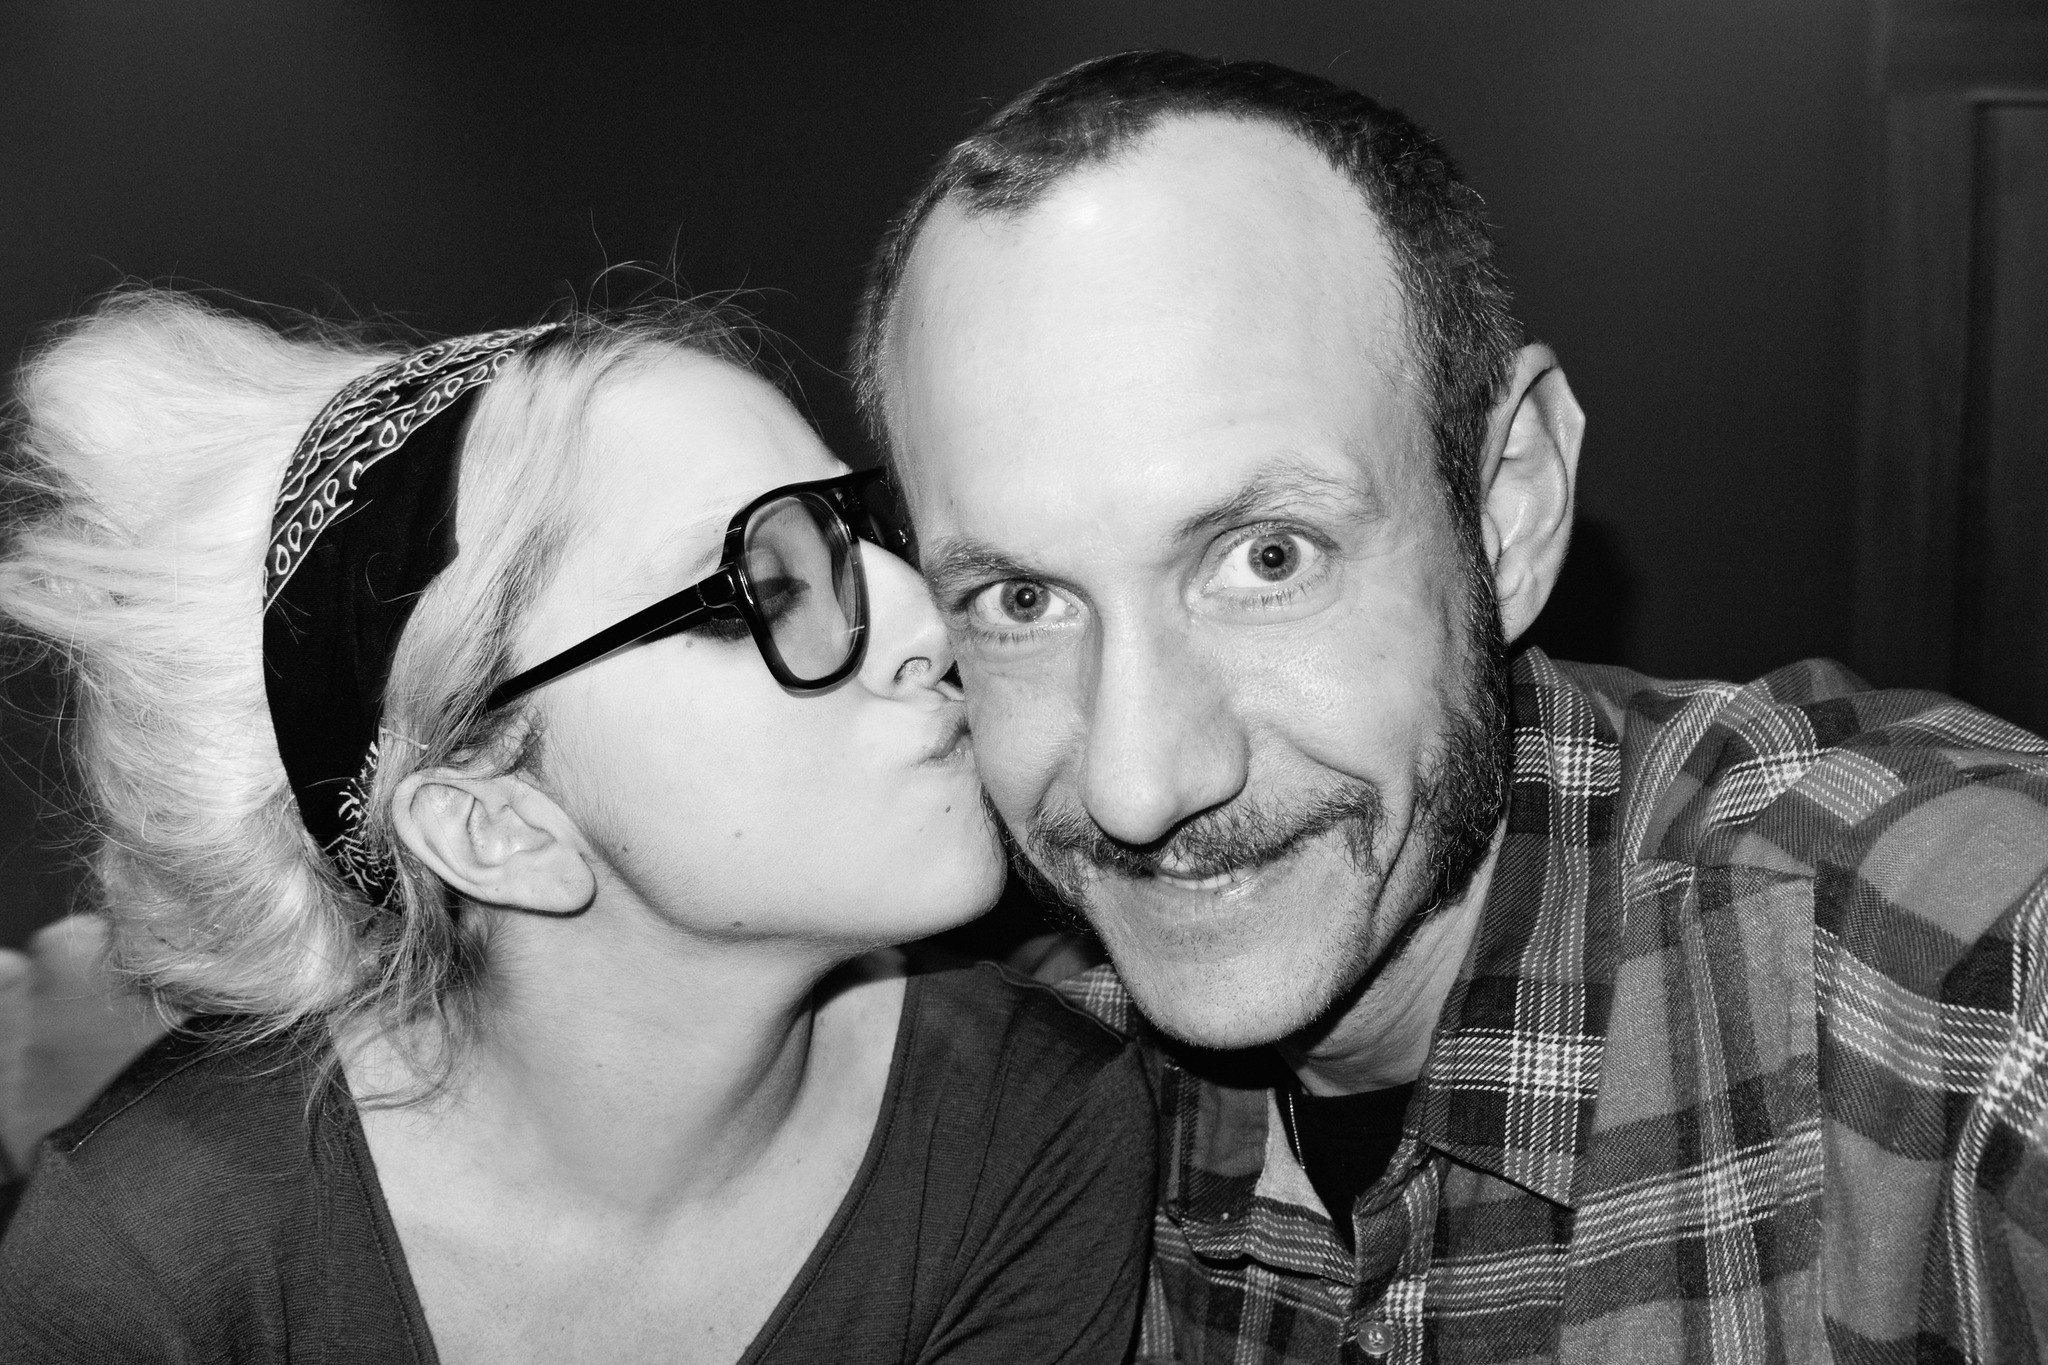 File:12-11-10 Terry Richardson 009.jpg